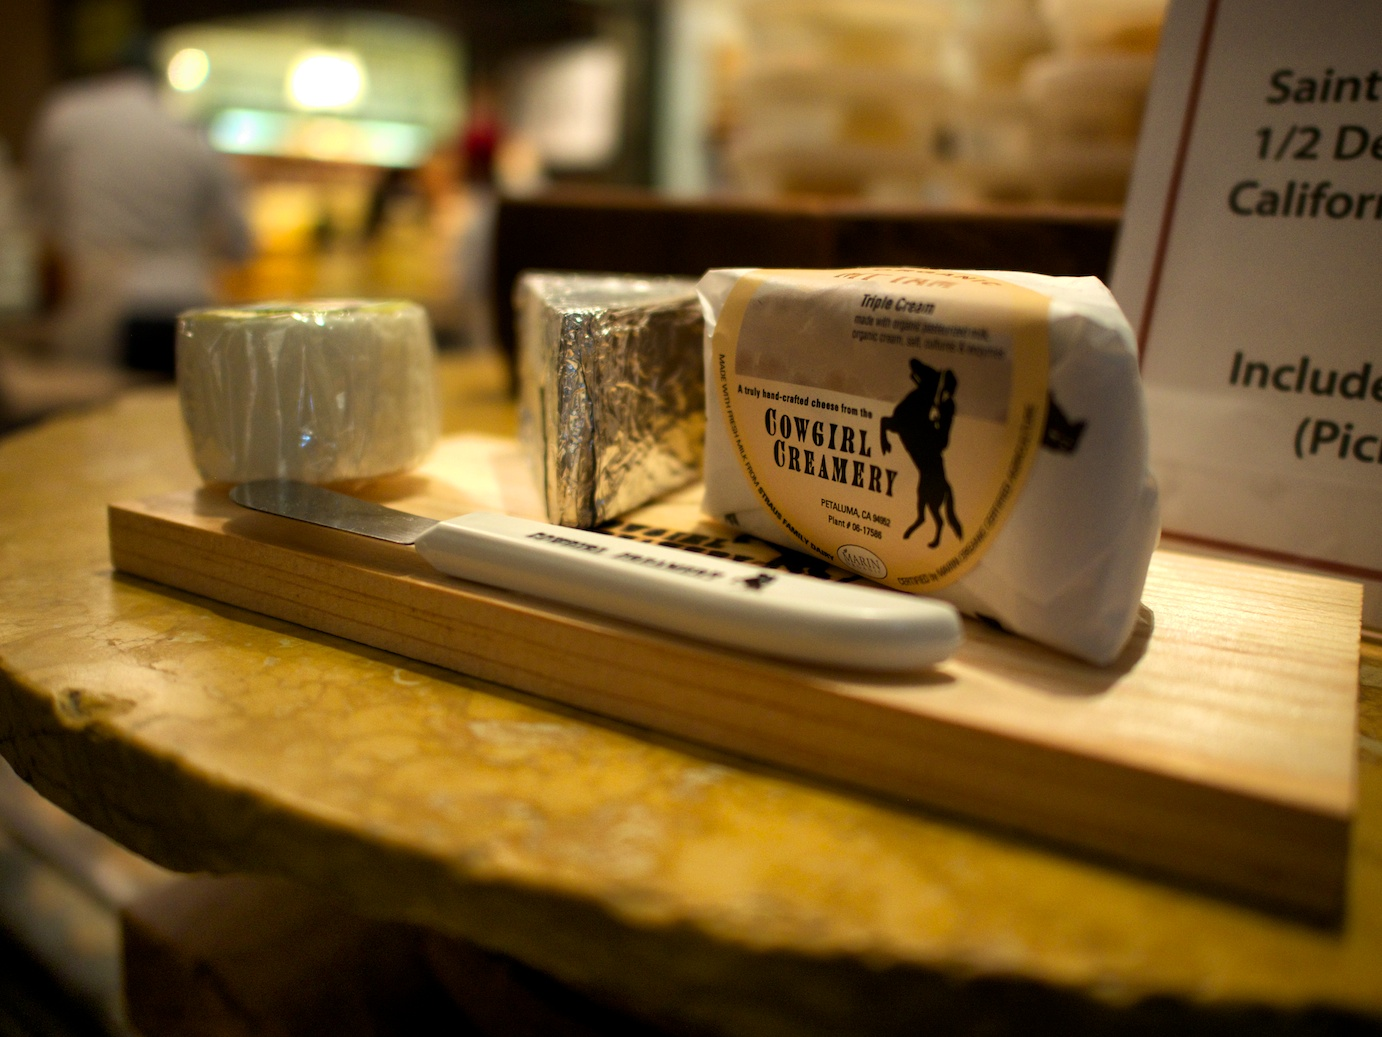 At a cheese shop, shooting at f/1.7